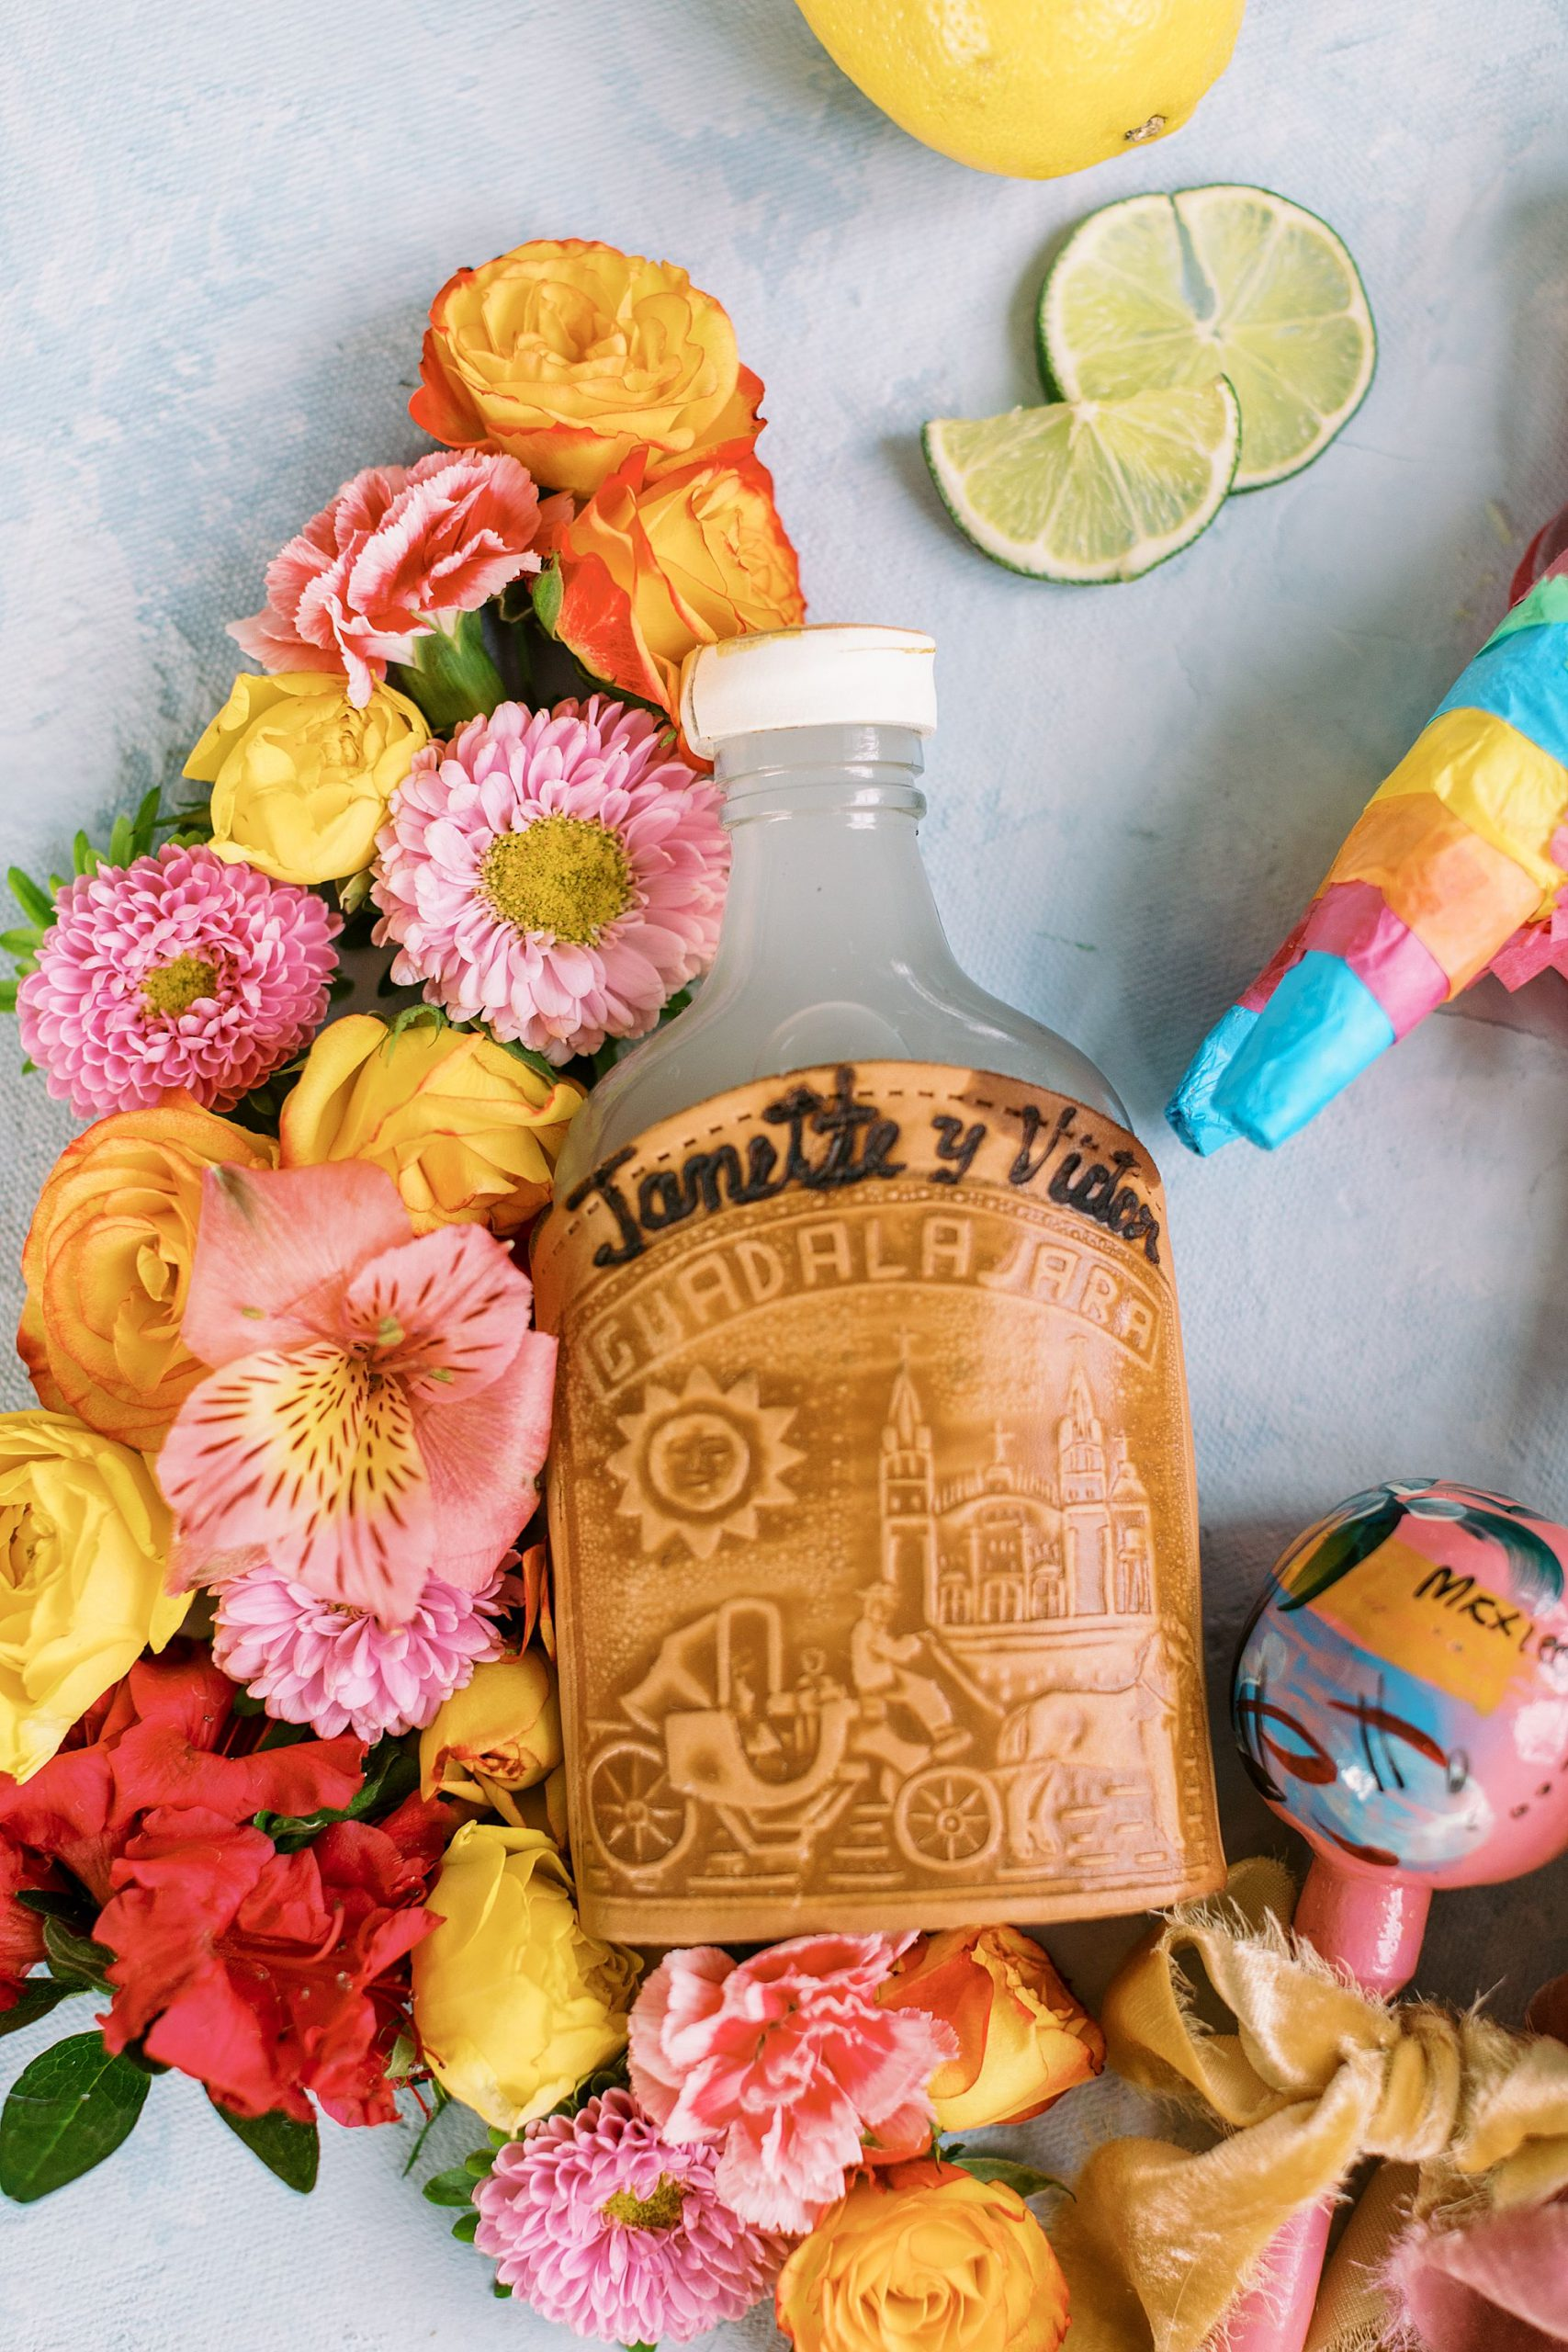 Cinco De Mayo Inspiration for Your FIesta - Party Crush Studio and Ashley Baumgartner_0054.jpg